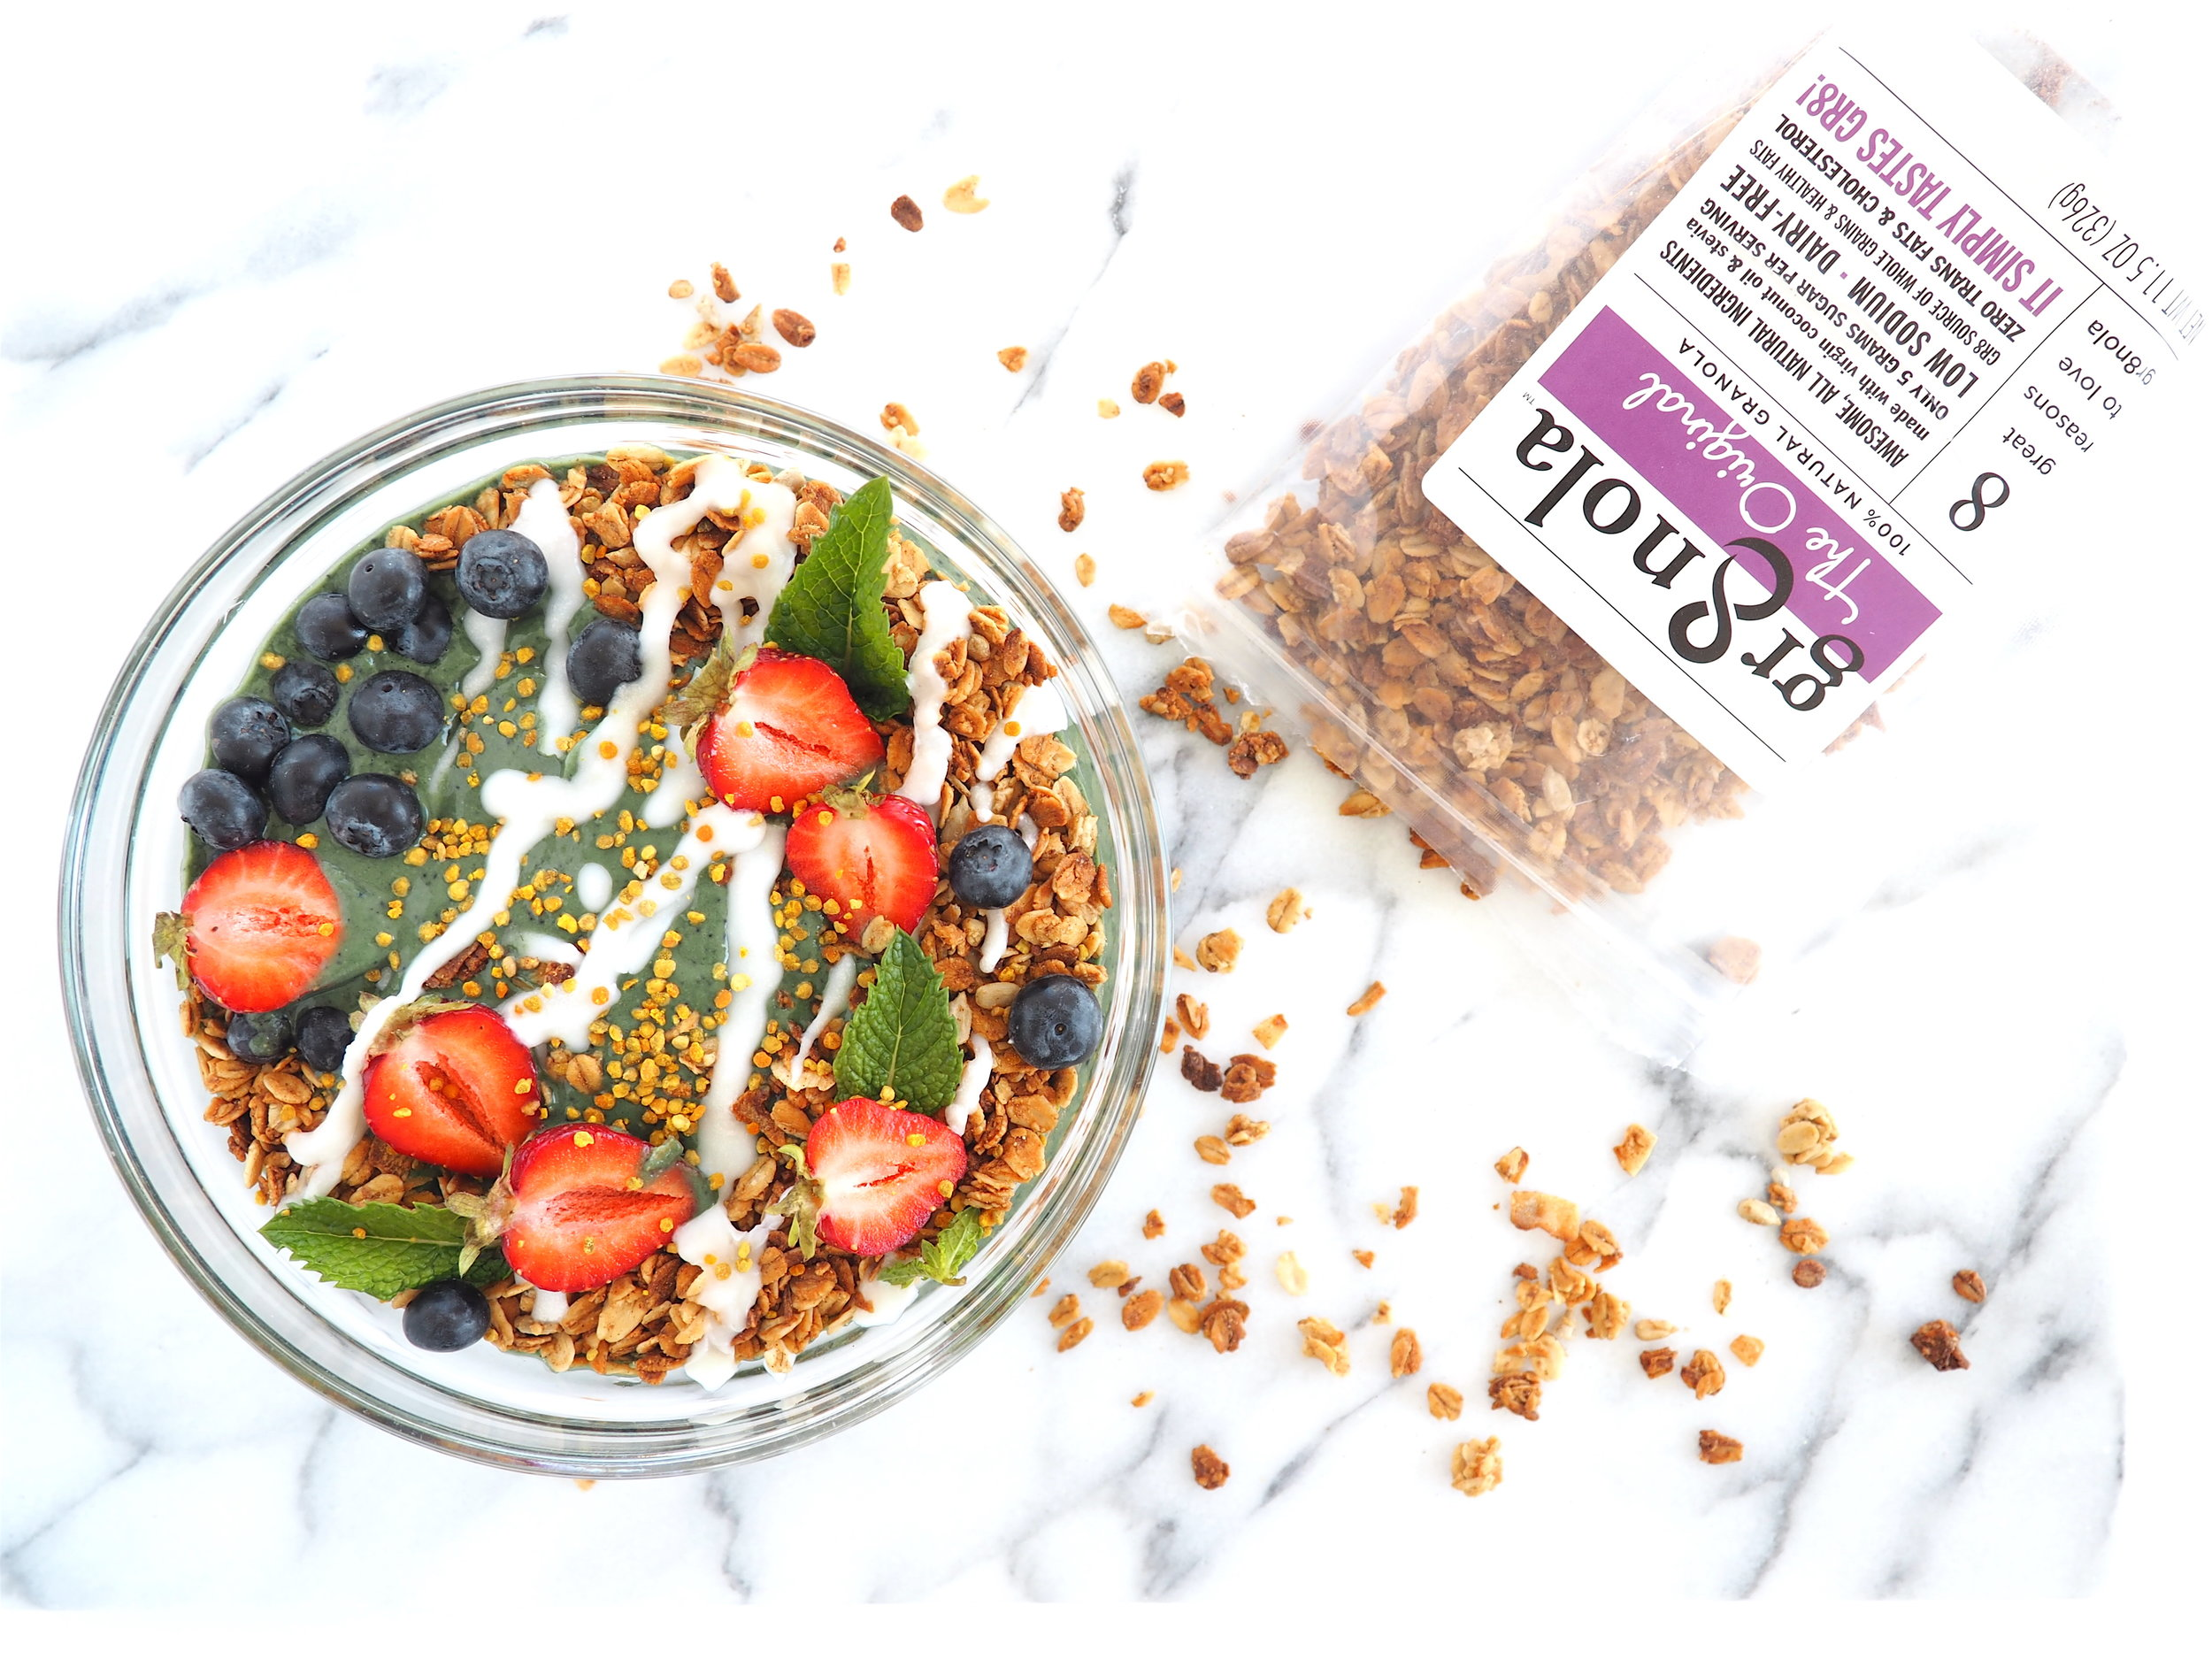 Good-For-You Smoothie Bowl with Gr8nola Granola